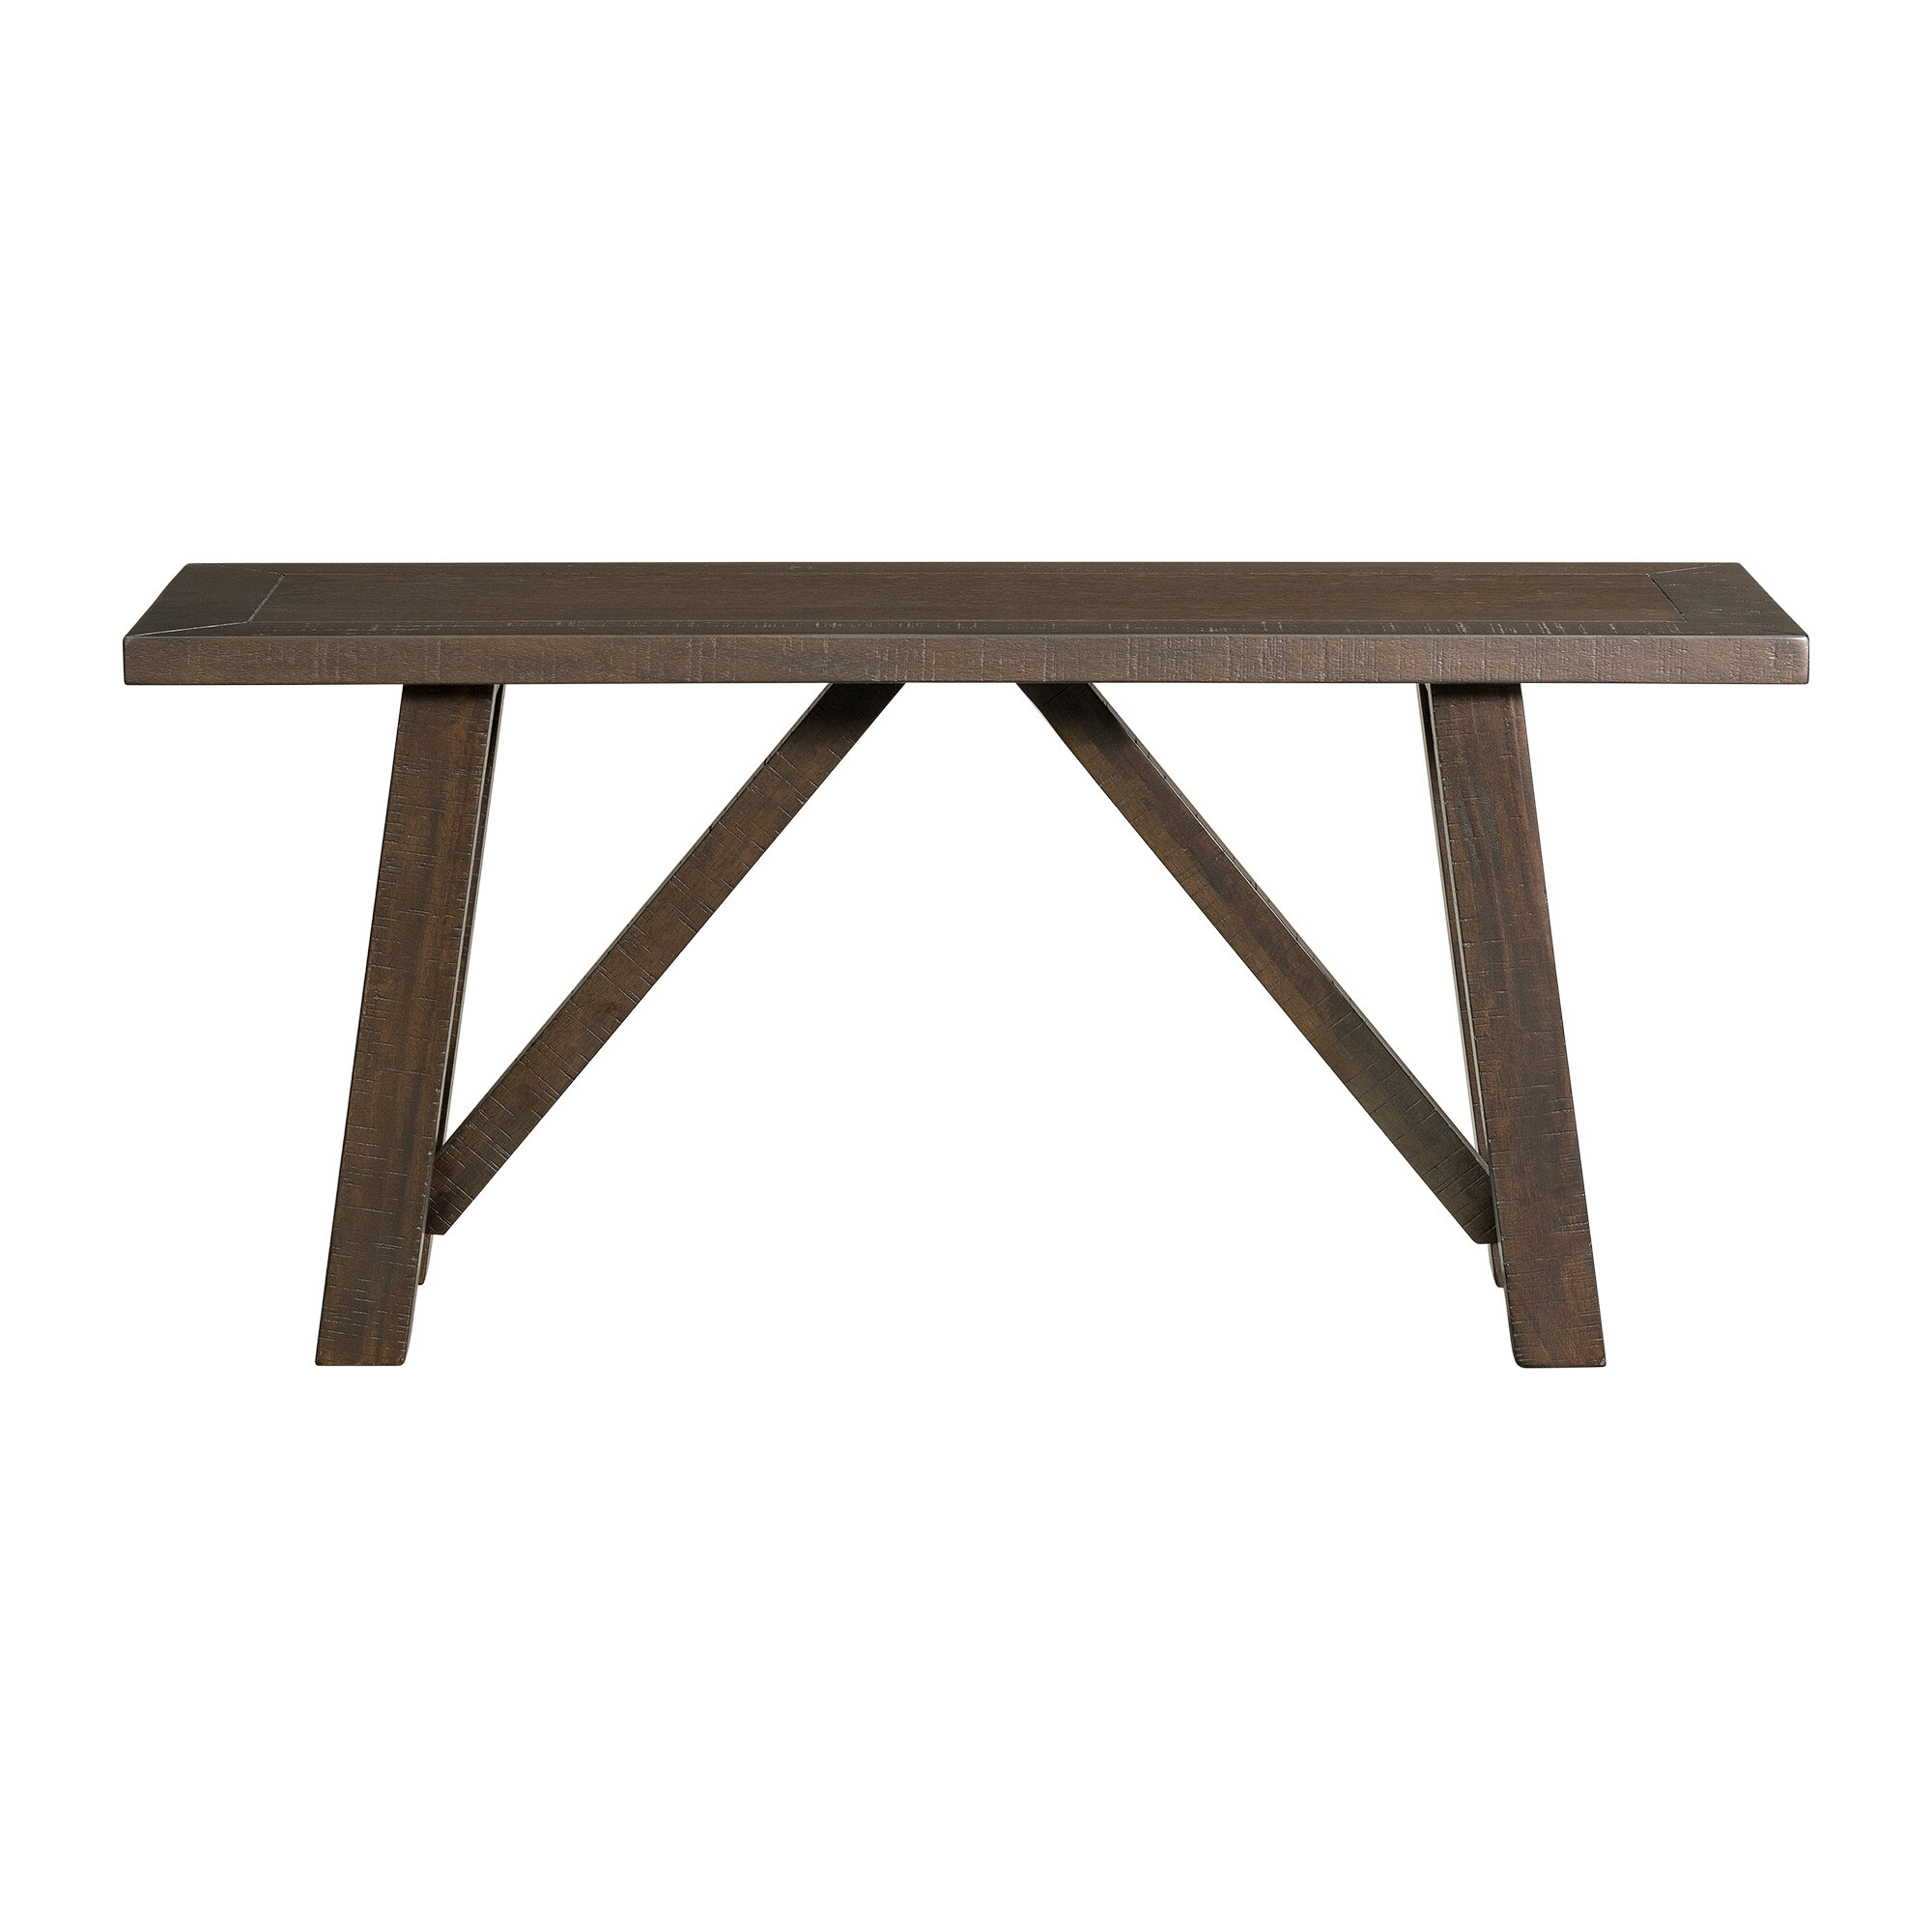 Discount Gilberto Wood Bench | Furniture Online Within Skoog Chevron Wooden Garden Benches (View 24 of 25)